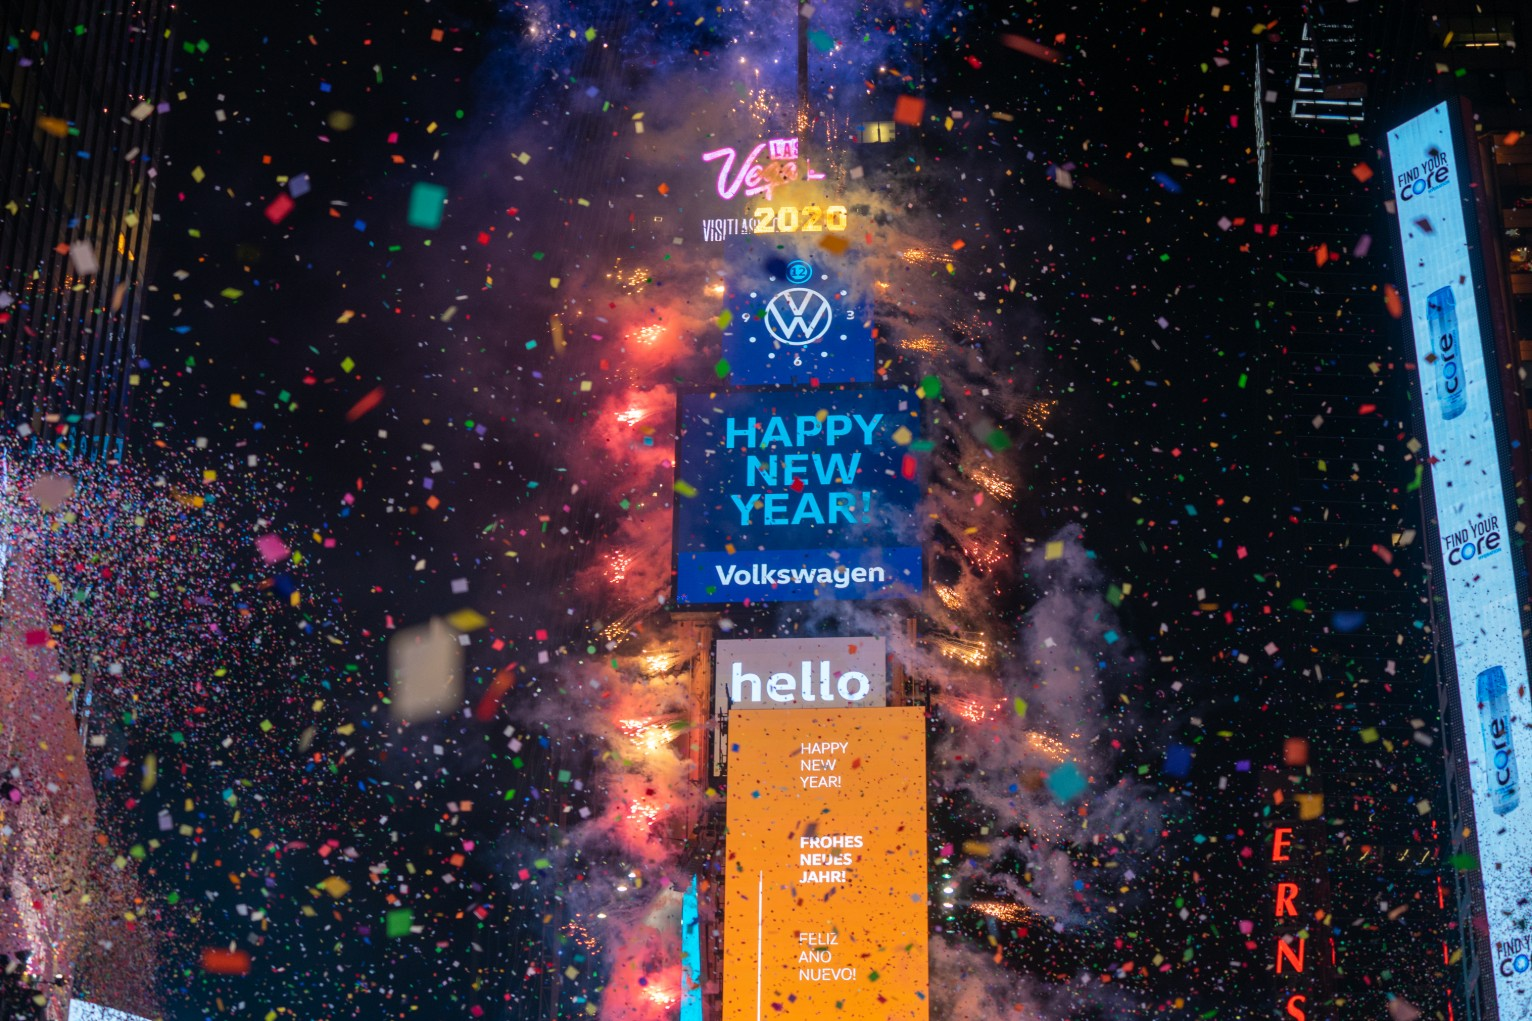 new york city s time square will host virtual new year s eve ball drop national news us news new york city s time square will host